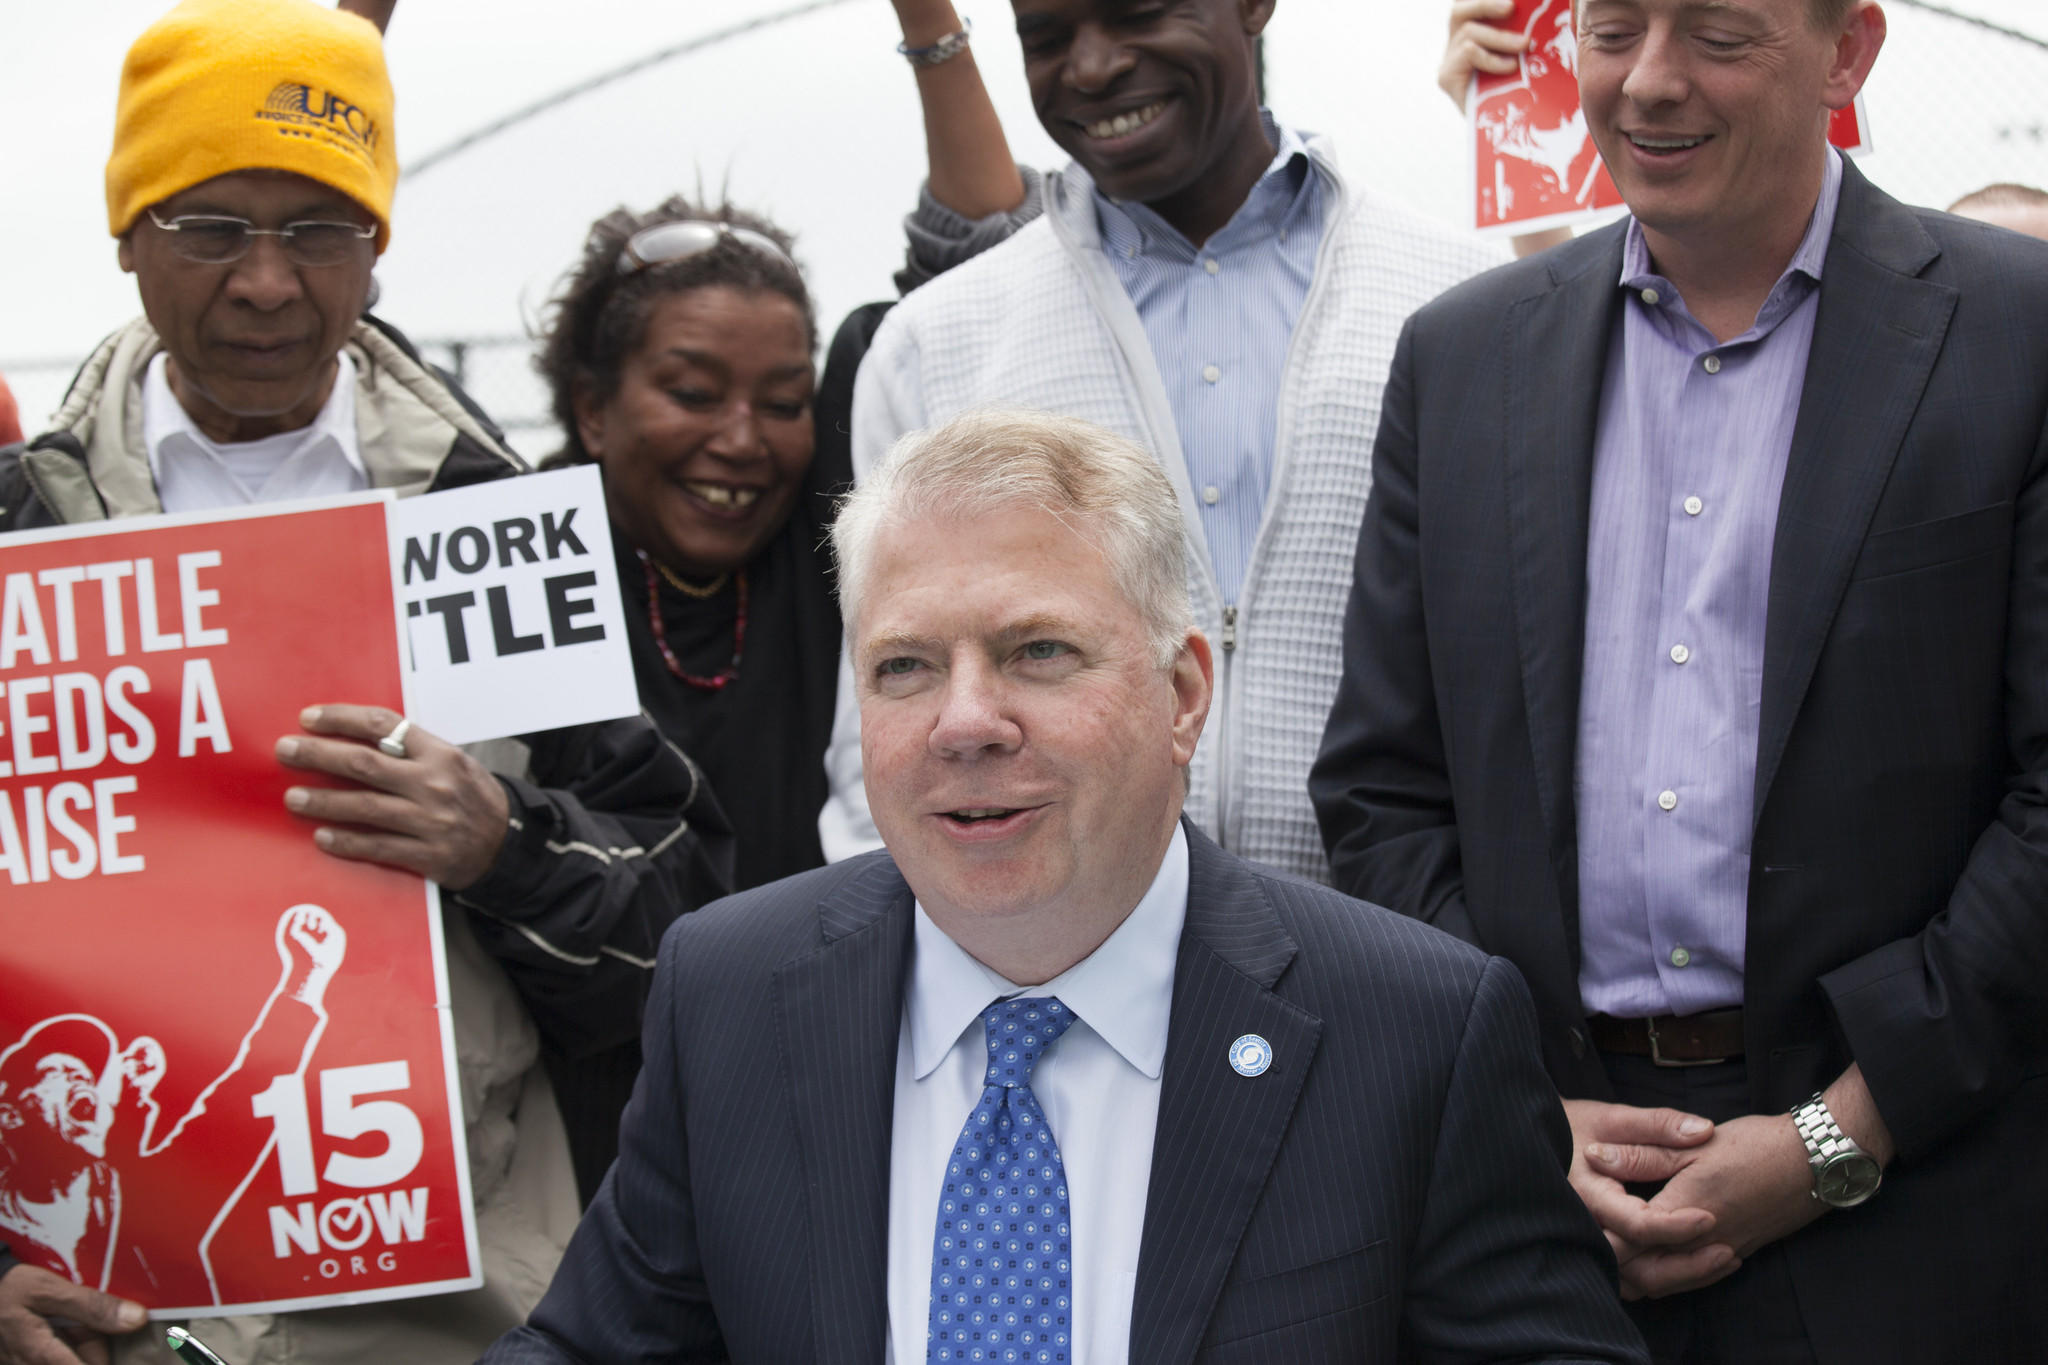 Seattle Mayor Ed Murray pauses while signing a bill that raises the city's minimum wage to $15 an hour.